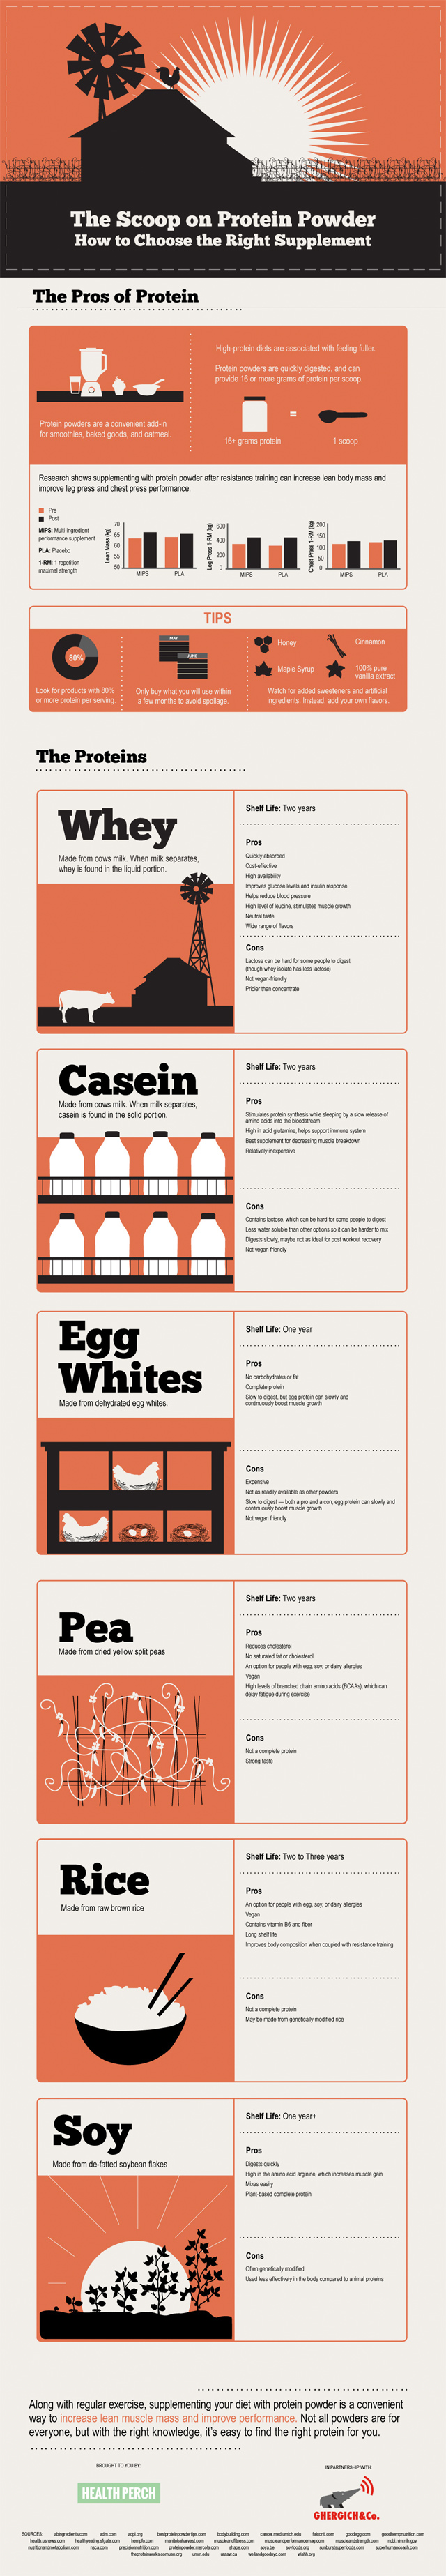 Protein Powder: Choose The Right Supplement Infographic